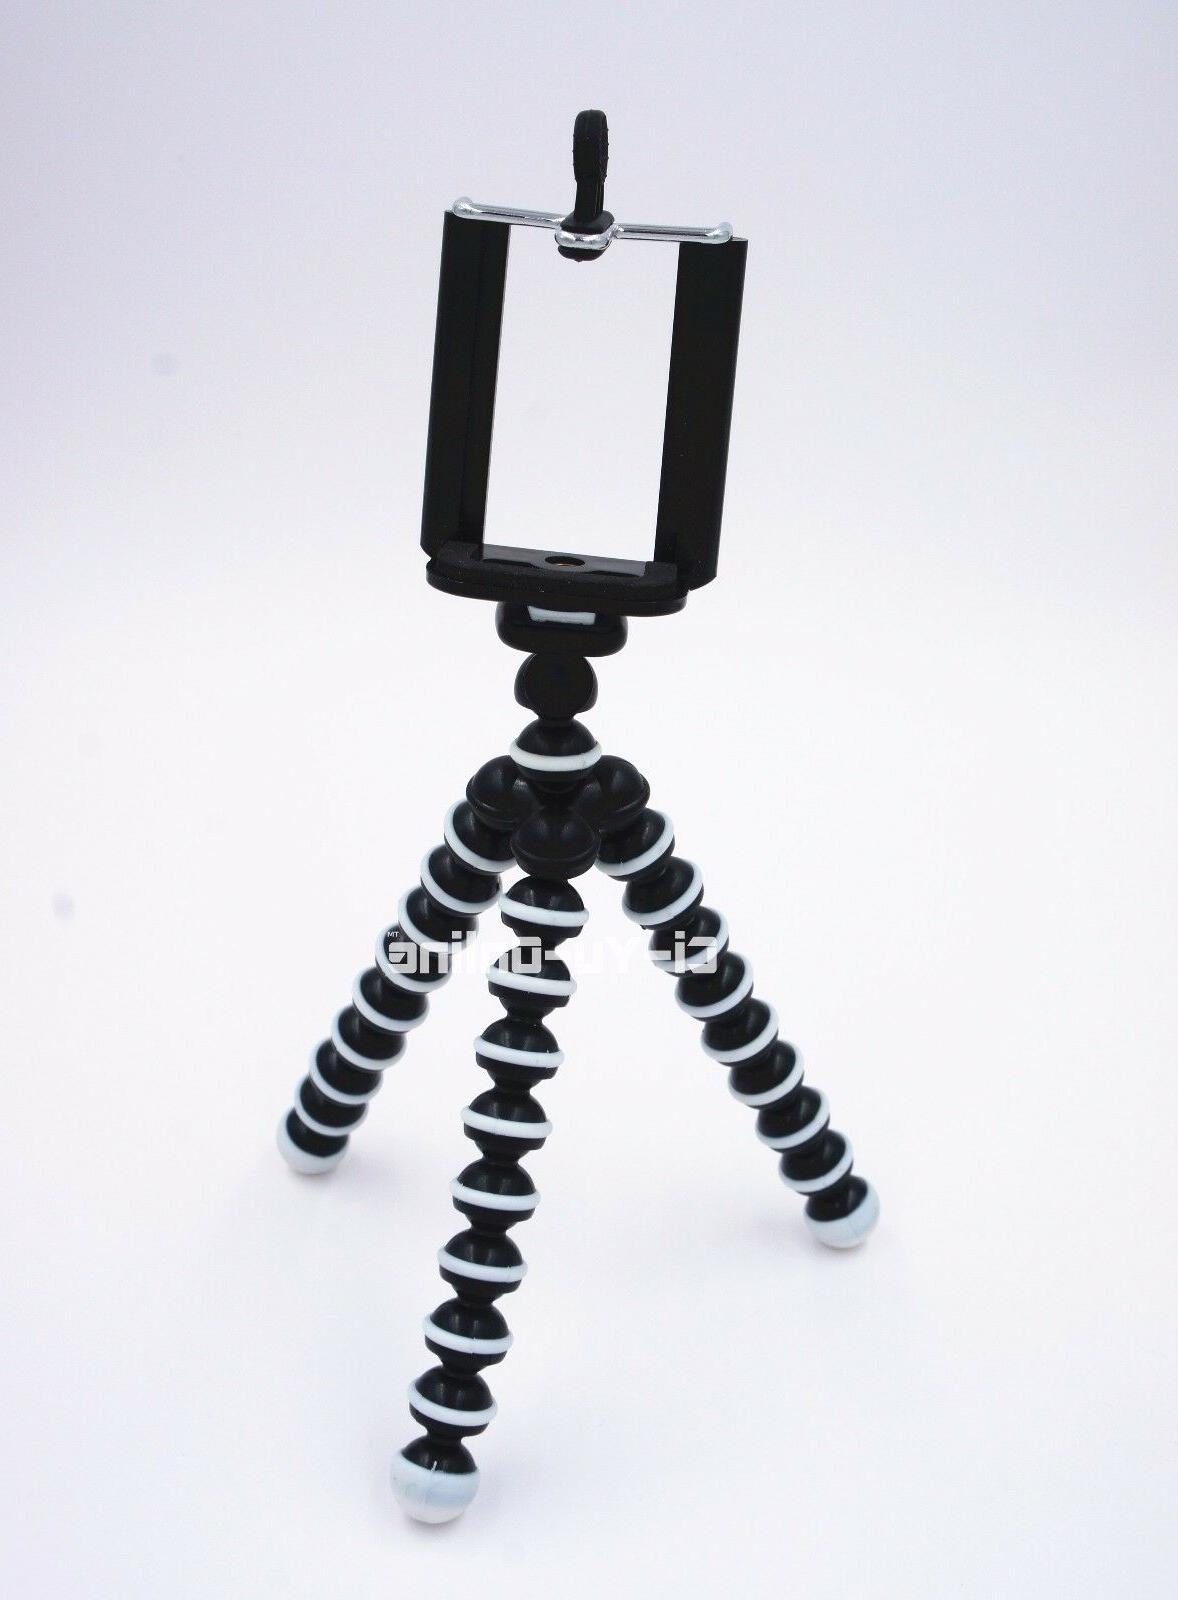 Mini Bracket for Cell Phone Camera